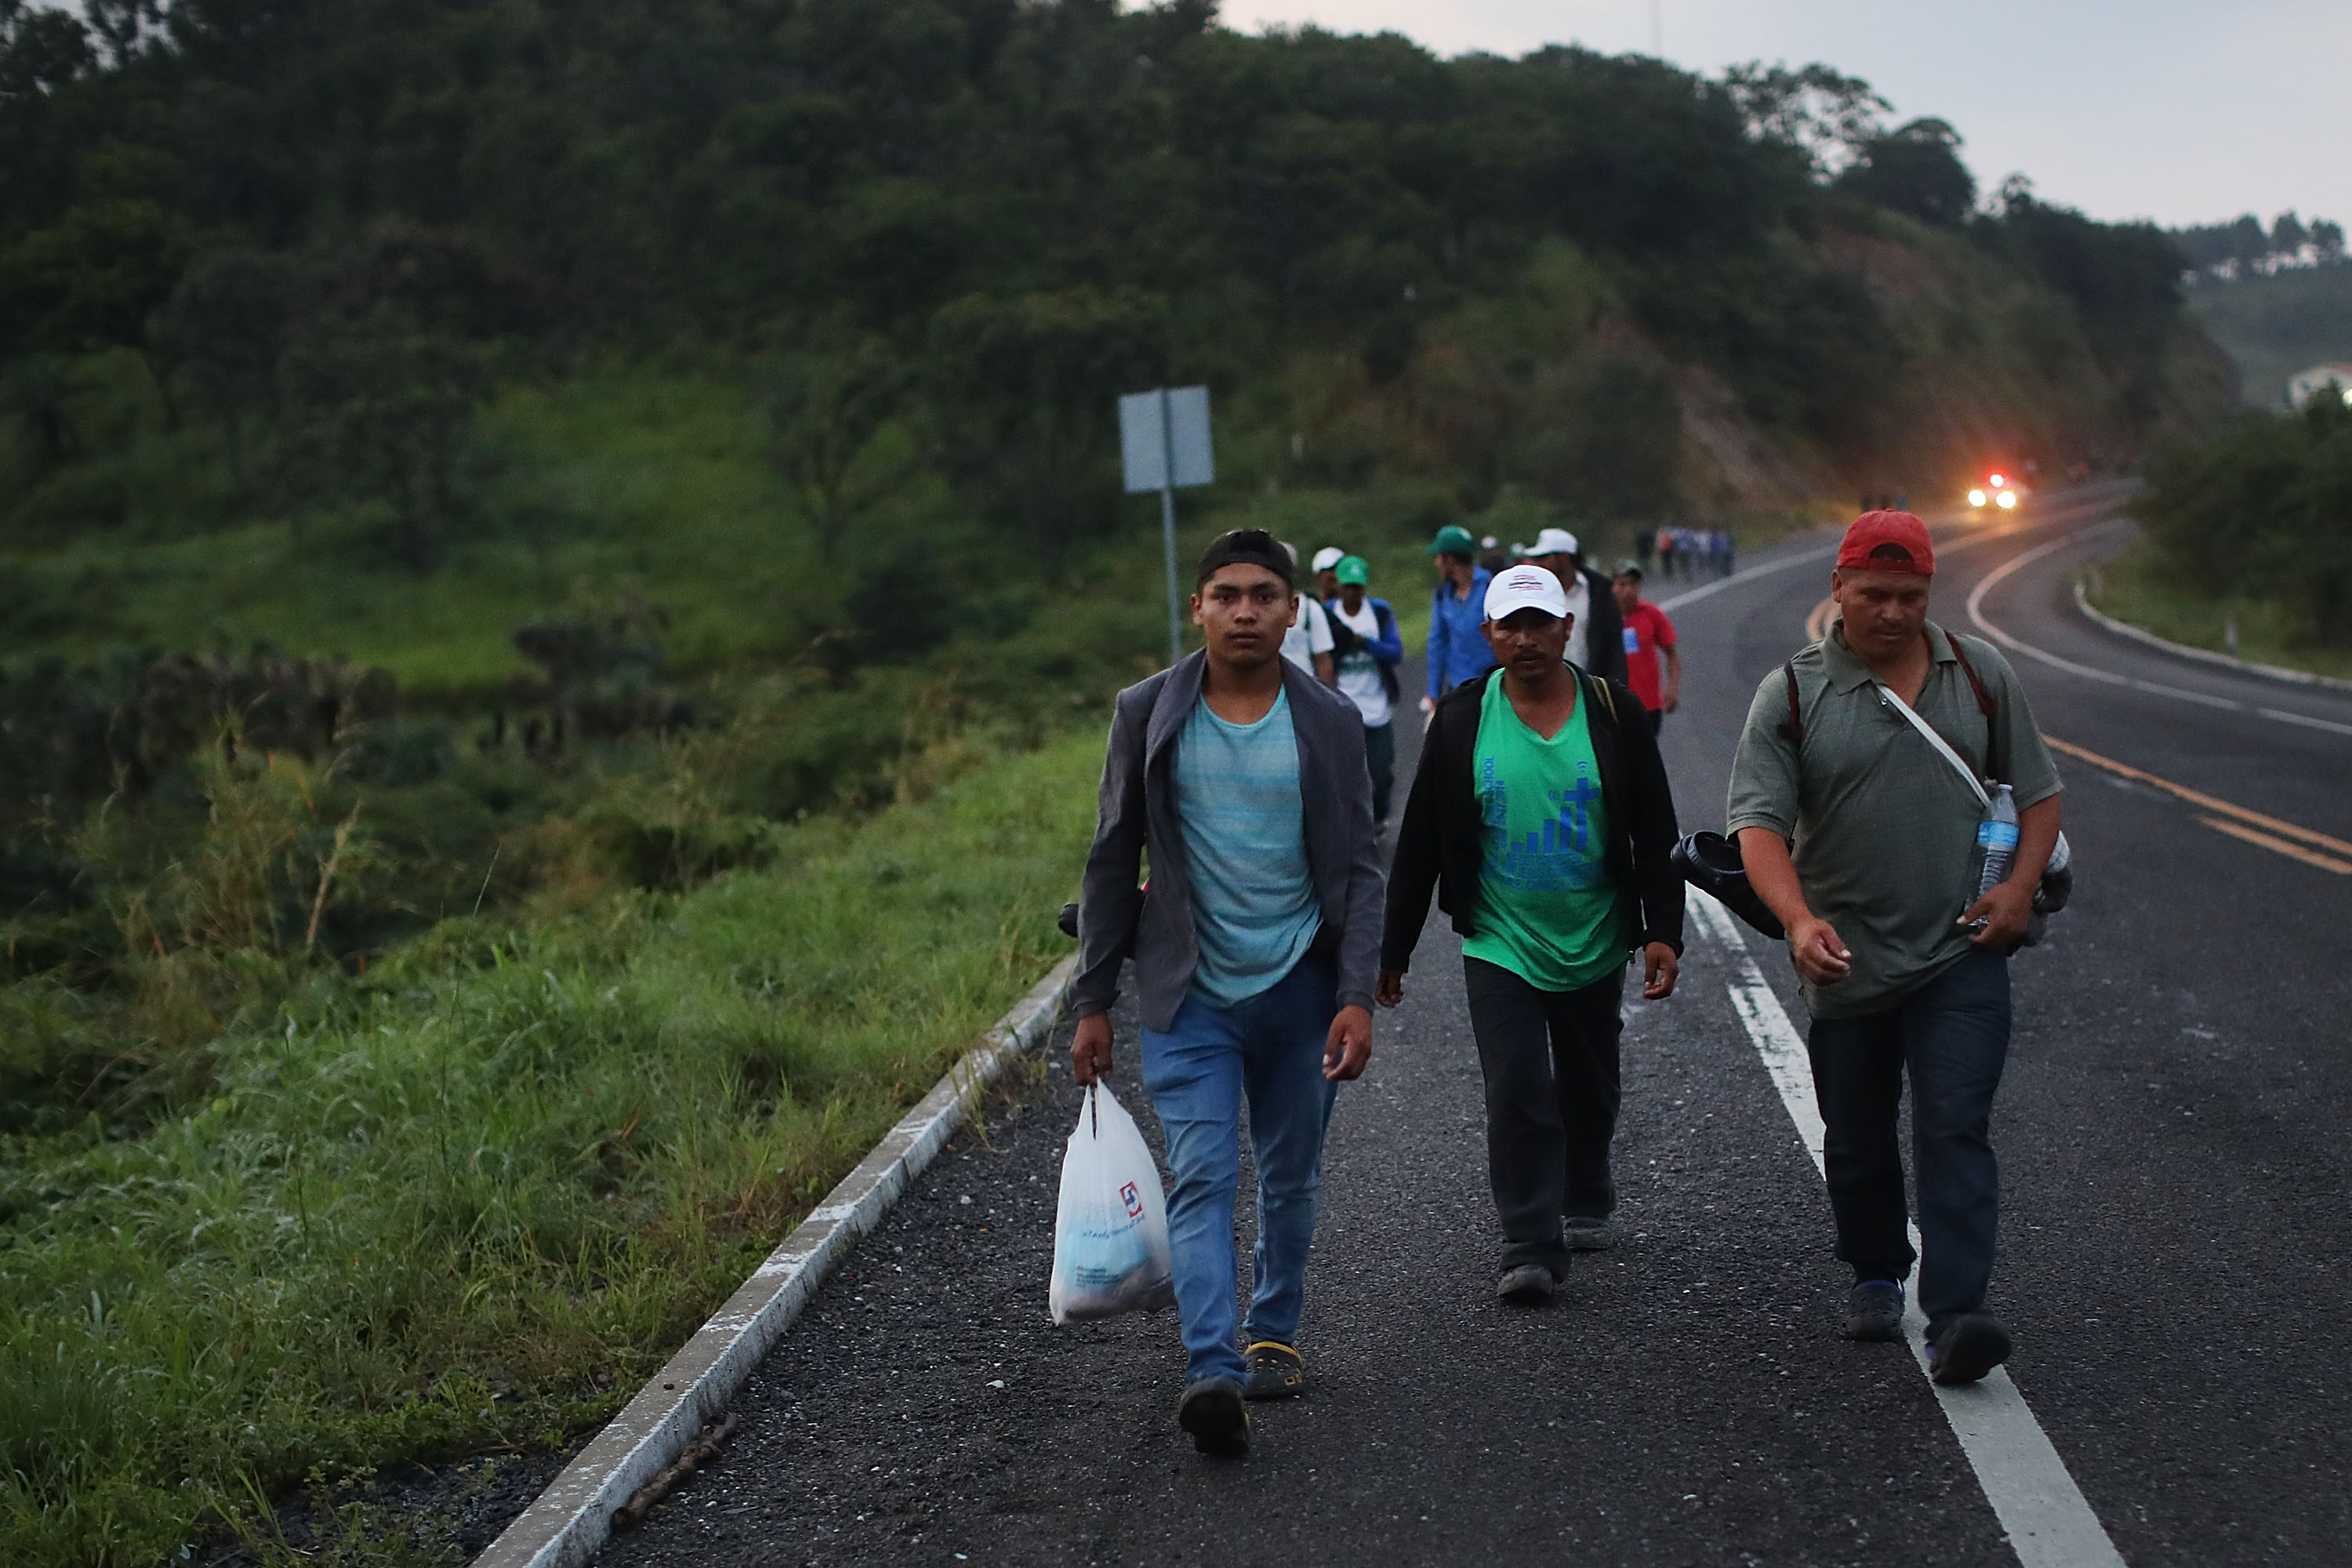 The Trump Campaign Made an Ad About the Caravan That Was So Racist Even Fox News Pulled it Off the Air